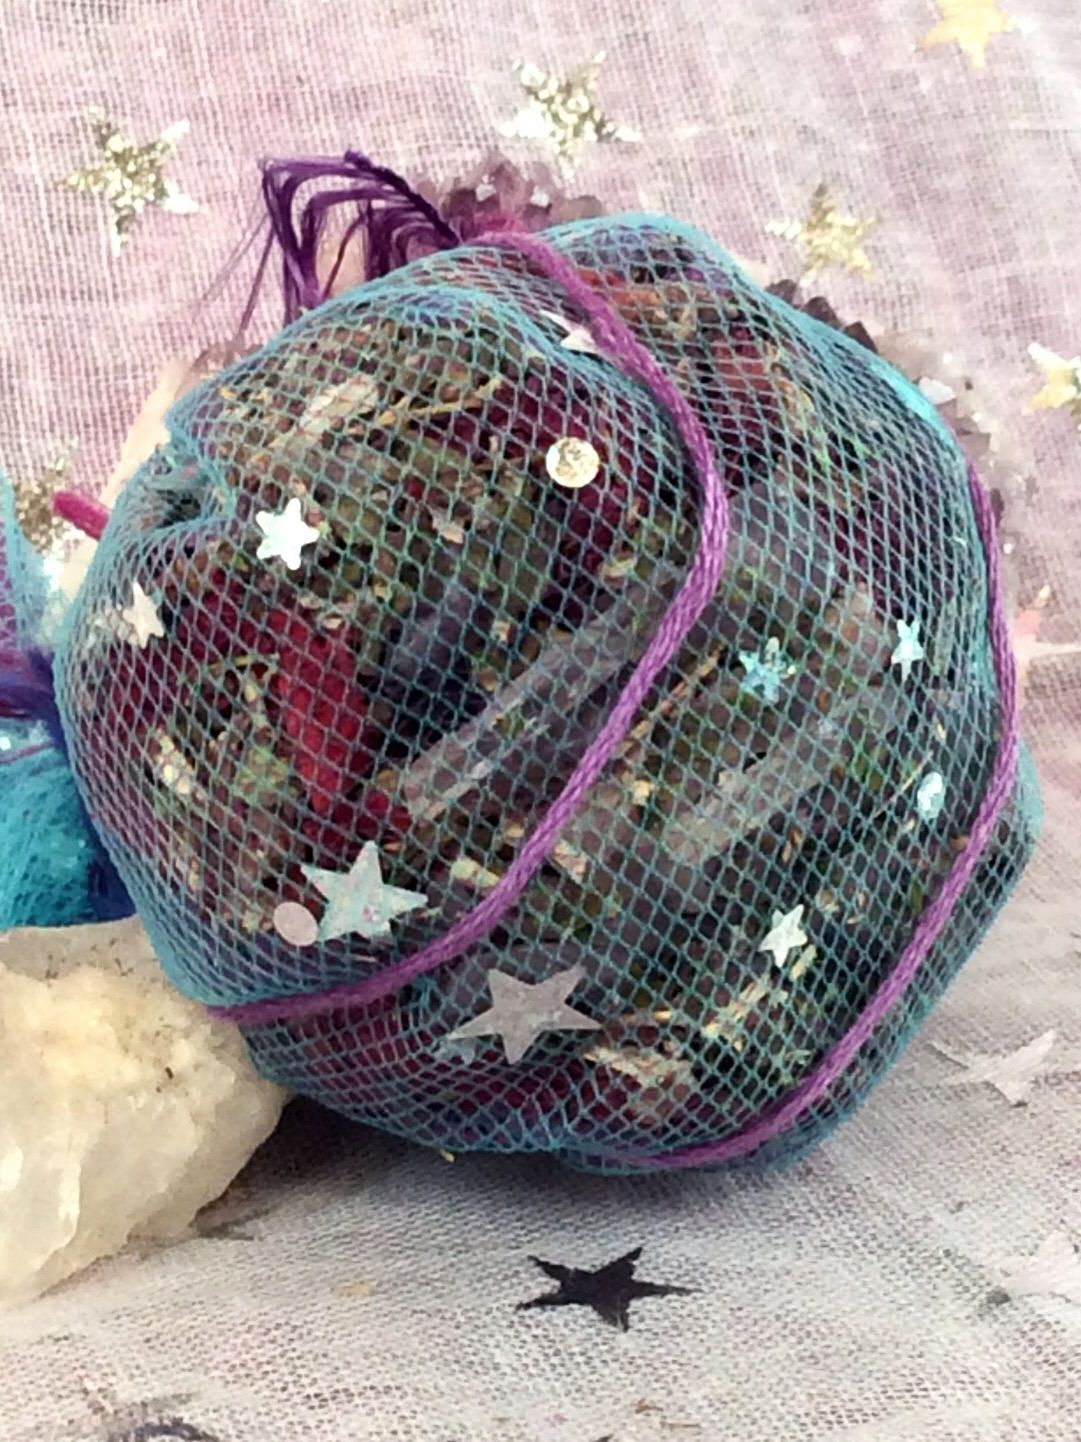 Astral Lucid Dreams Hanging Dream Sachet, Dreaming Sleep Herbs, Boho